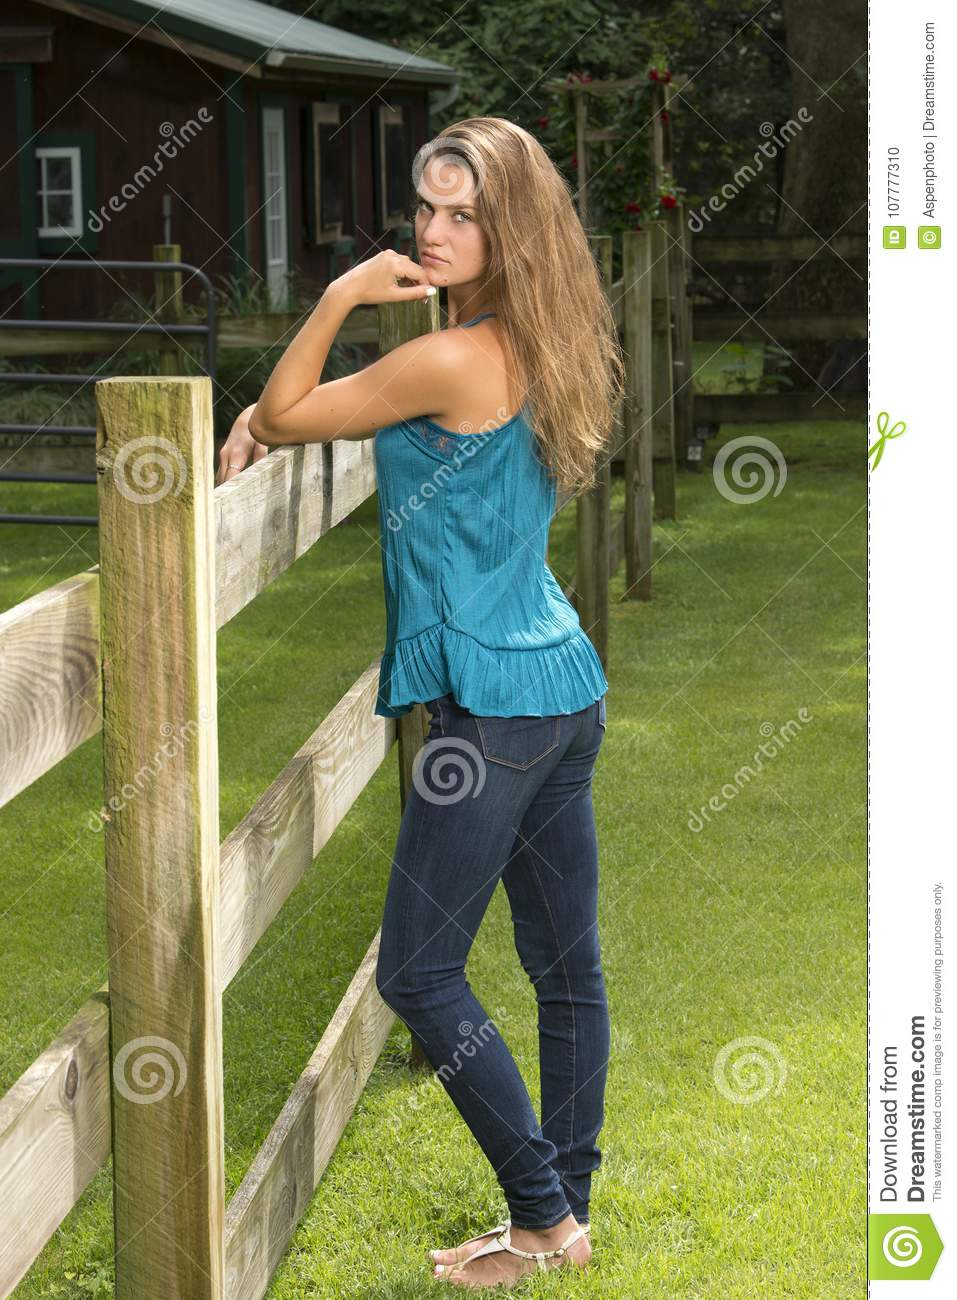 Beautiful Teen Girl Poses In Jeans And Blouse On Farm Rural Setting